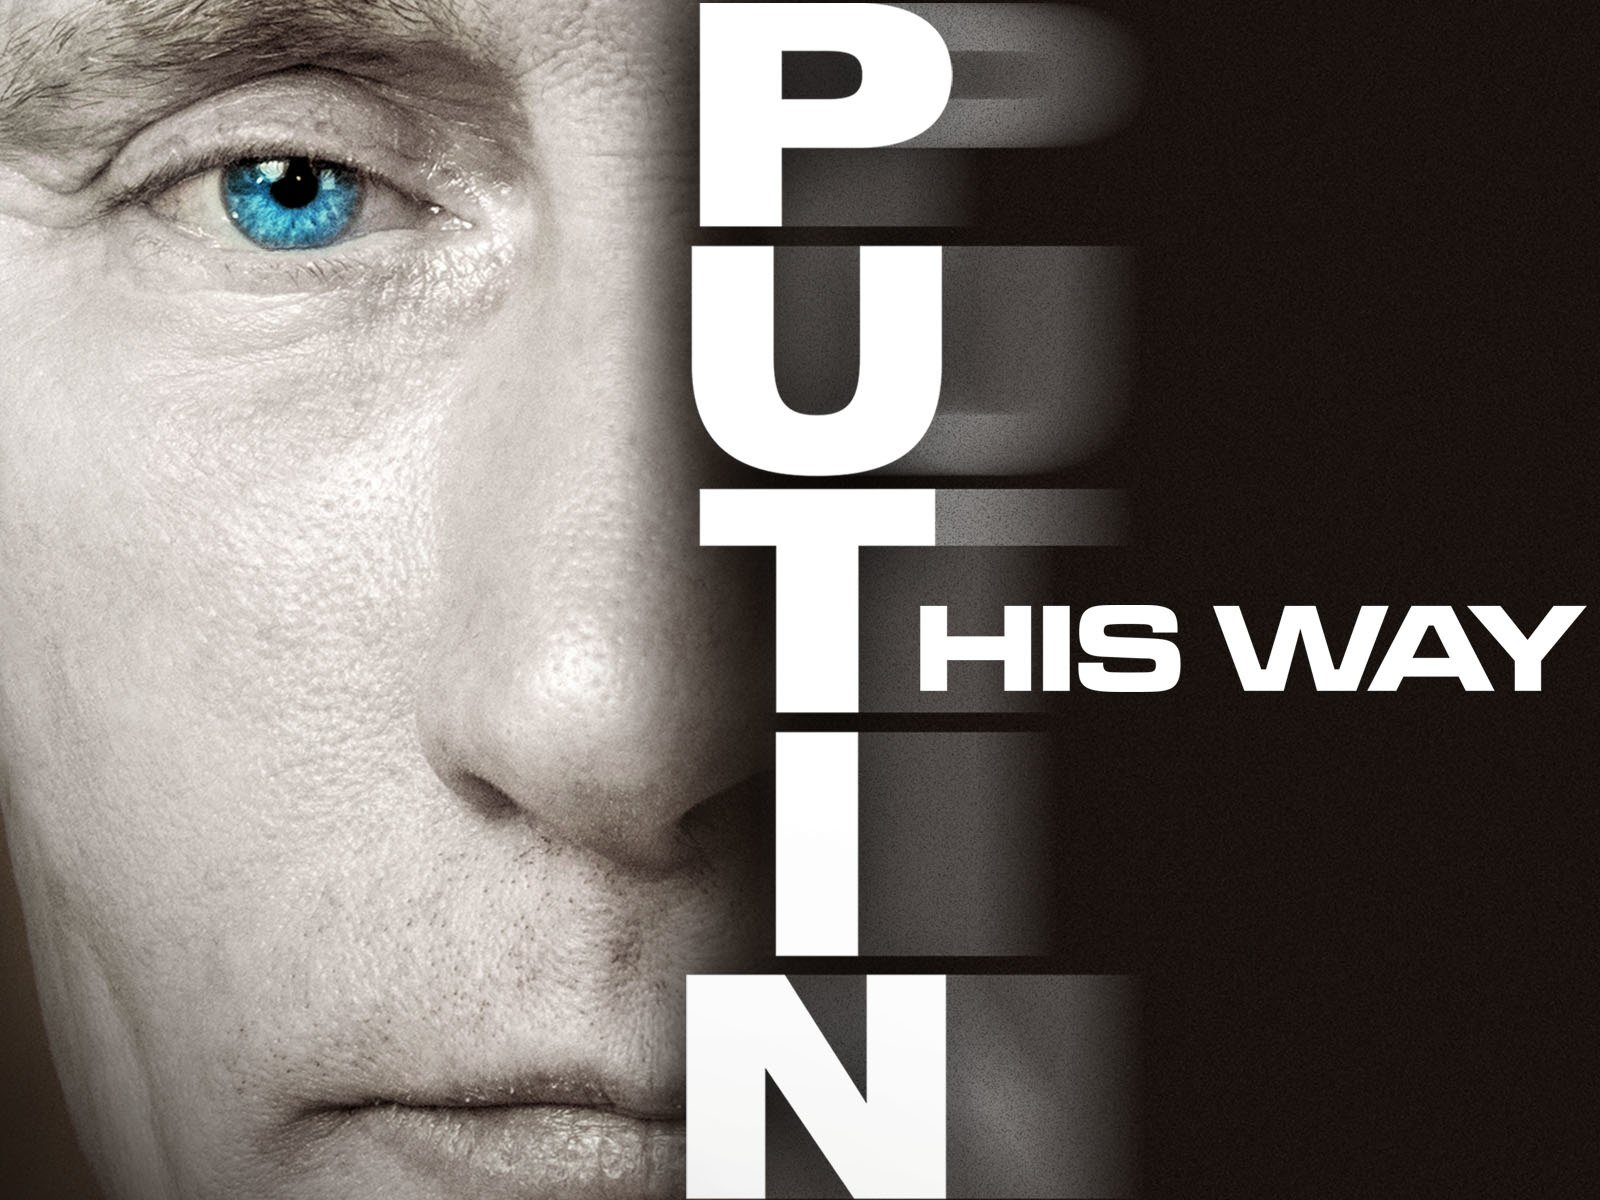 Putin: His Way on Amazon Prime Video UK